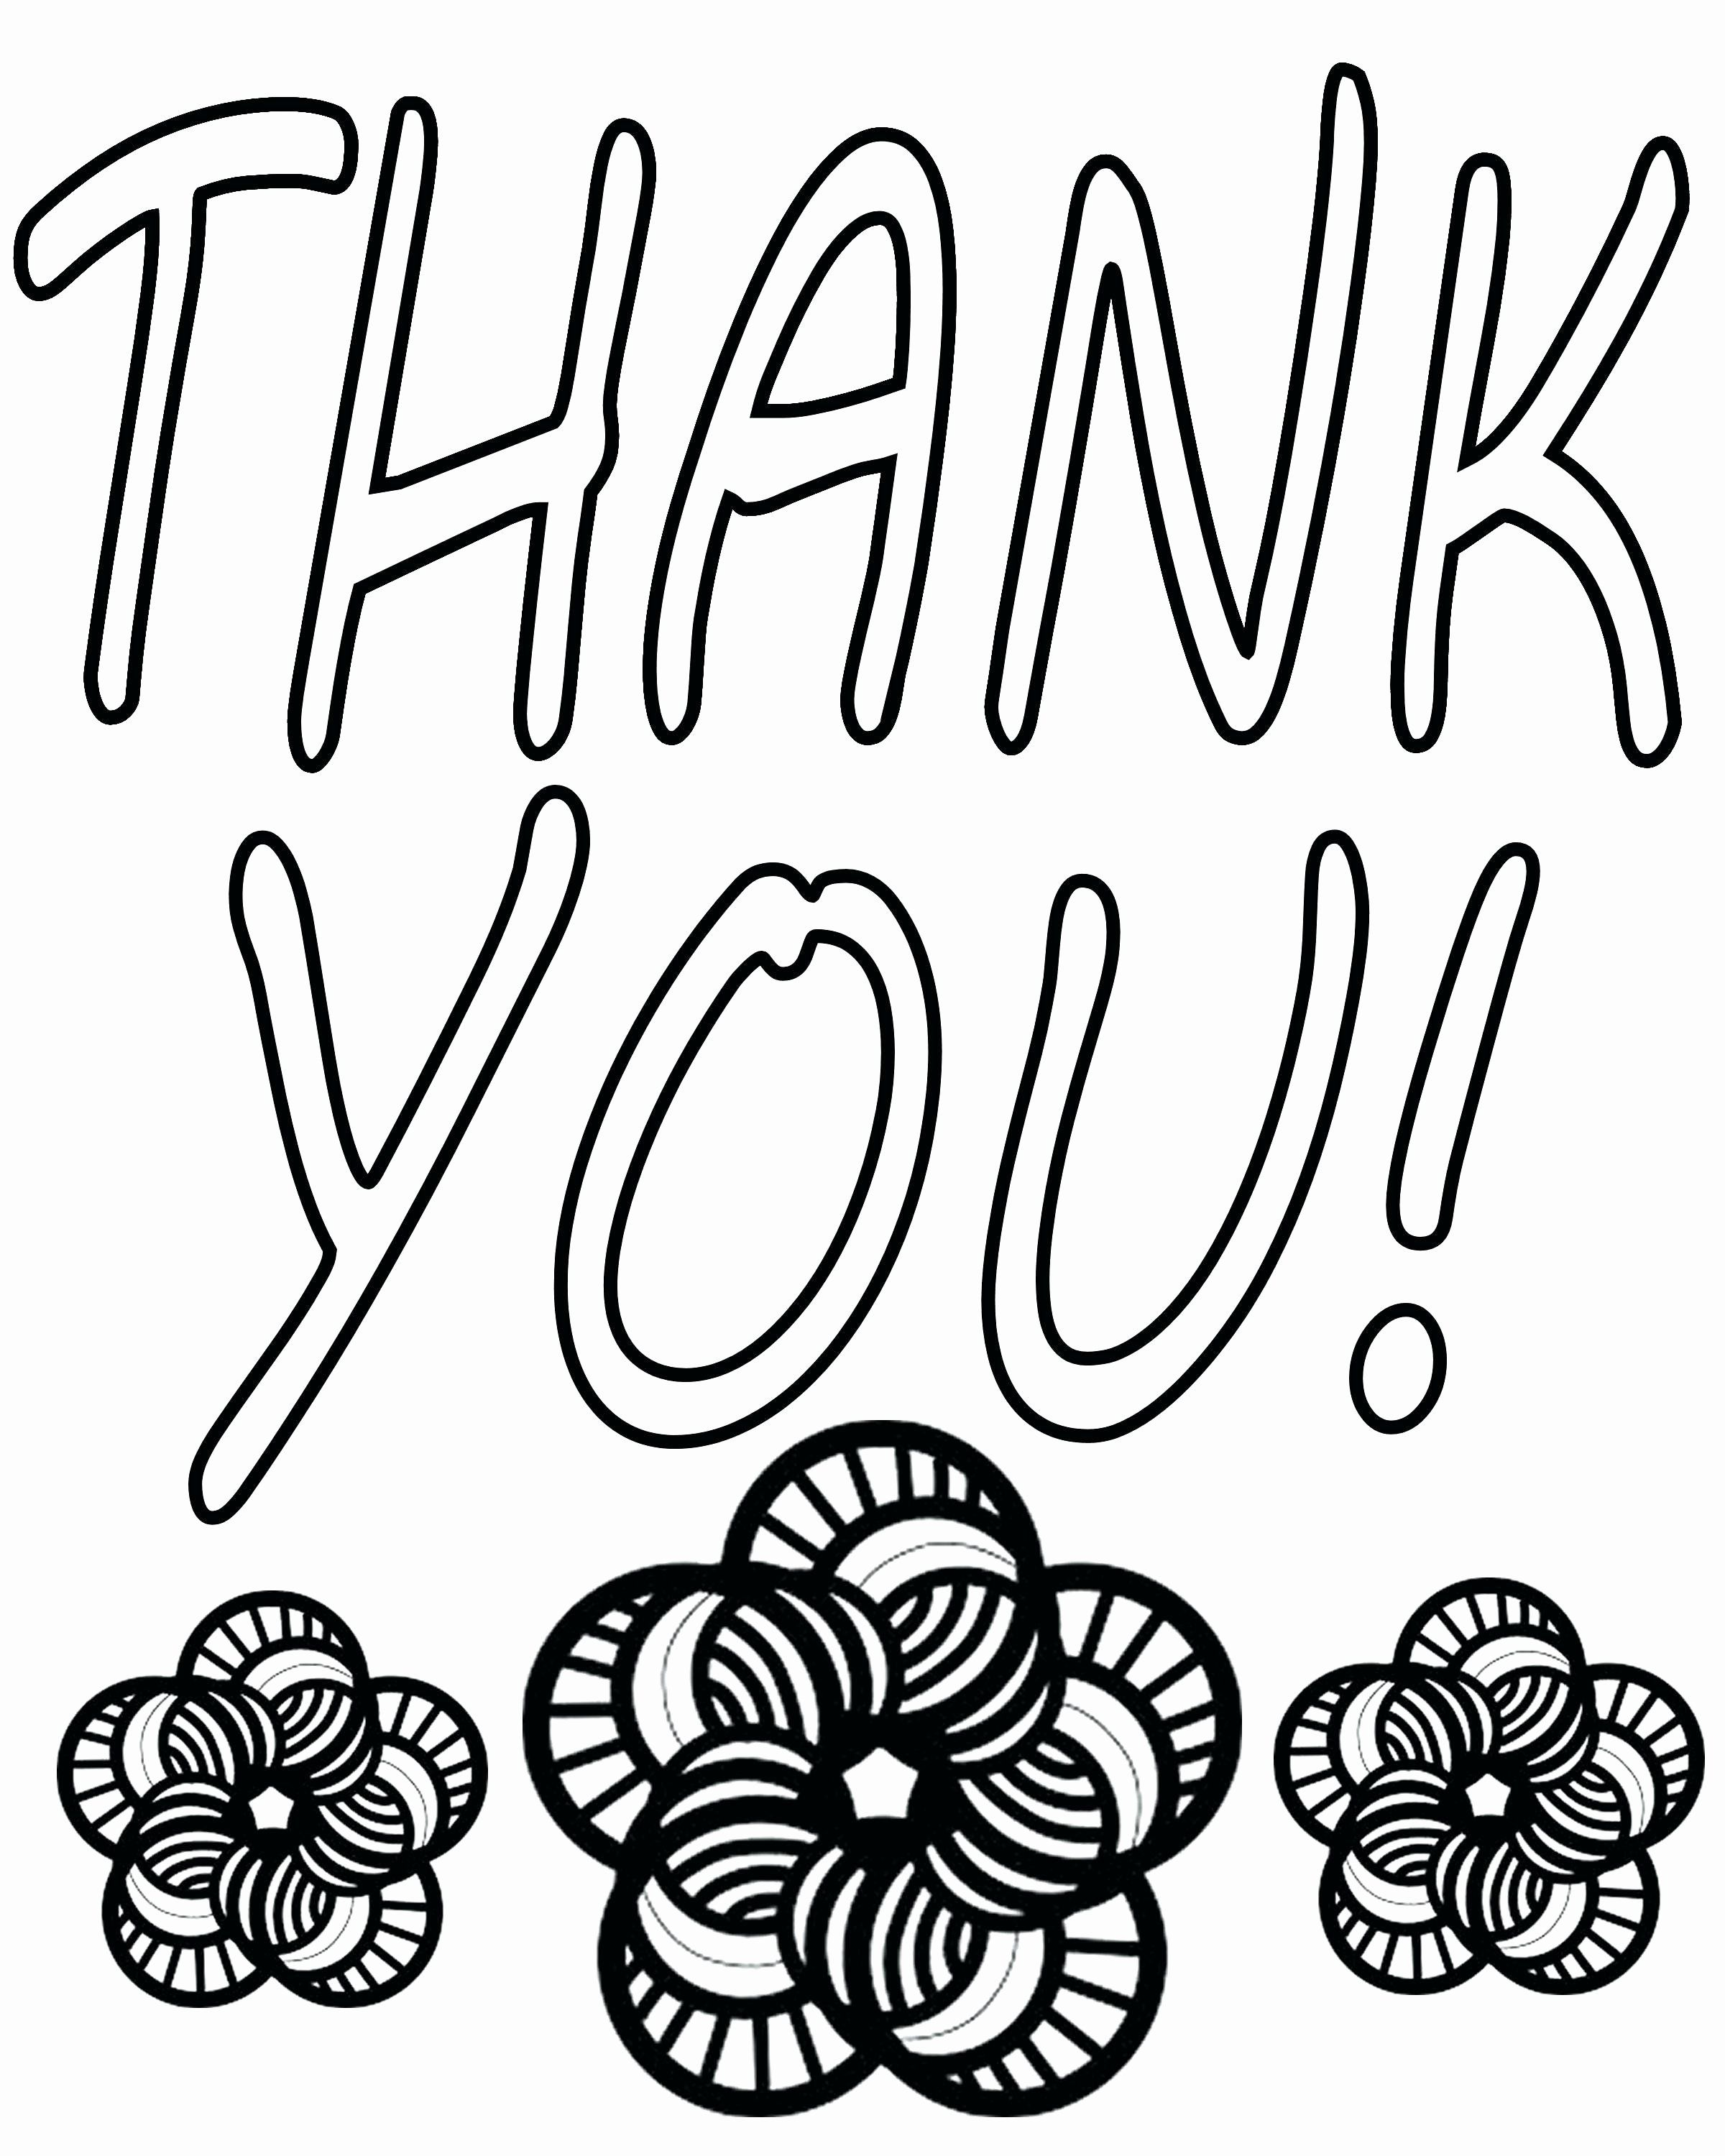 Coloring Thank You Cards in 2020 | Coloring pages for kids ...